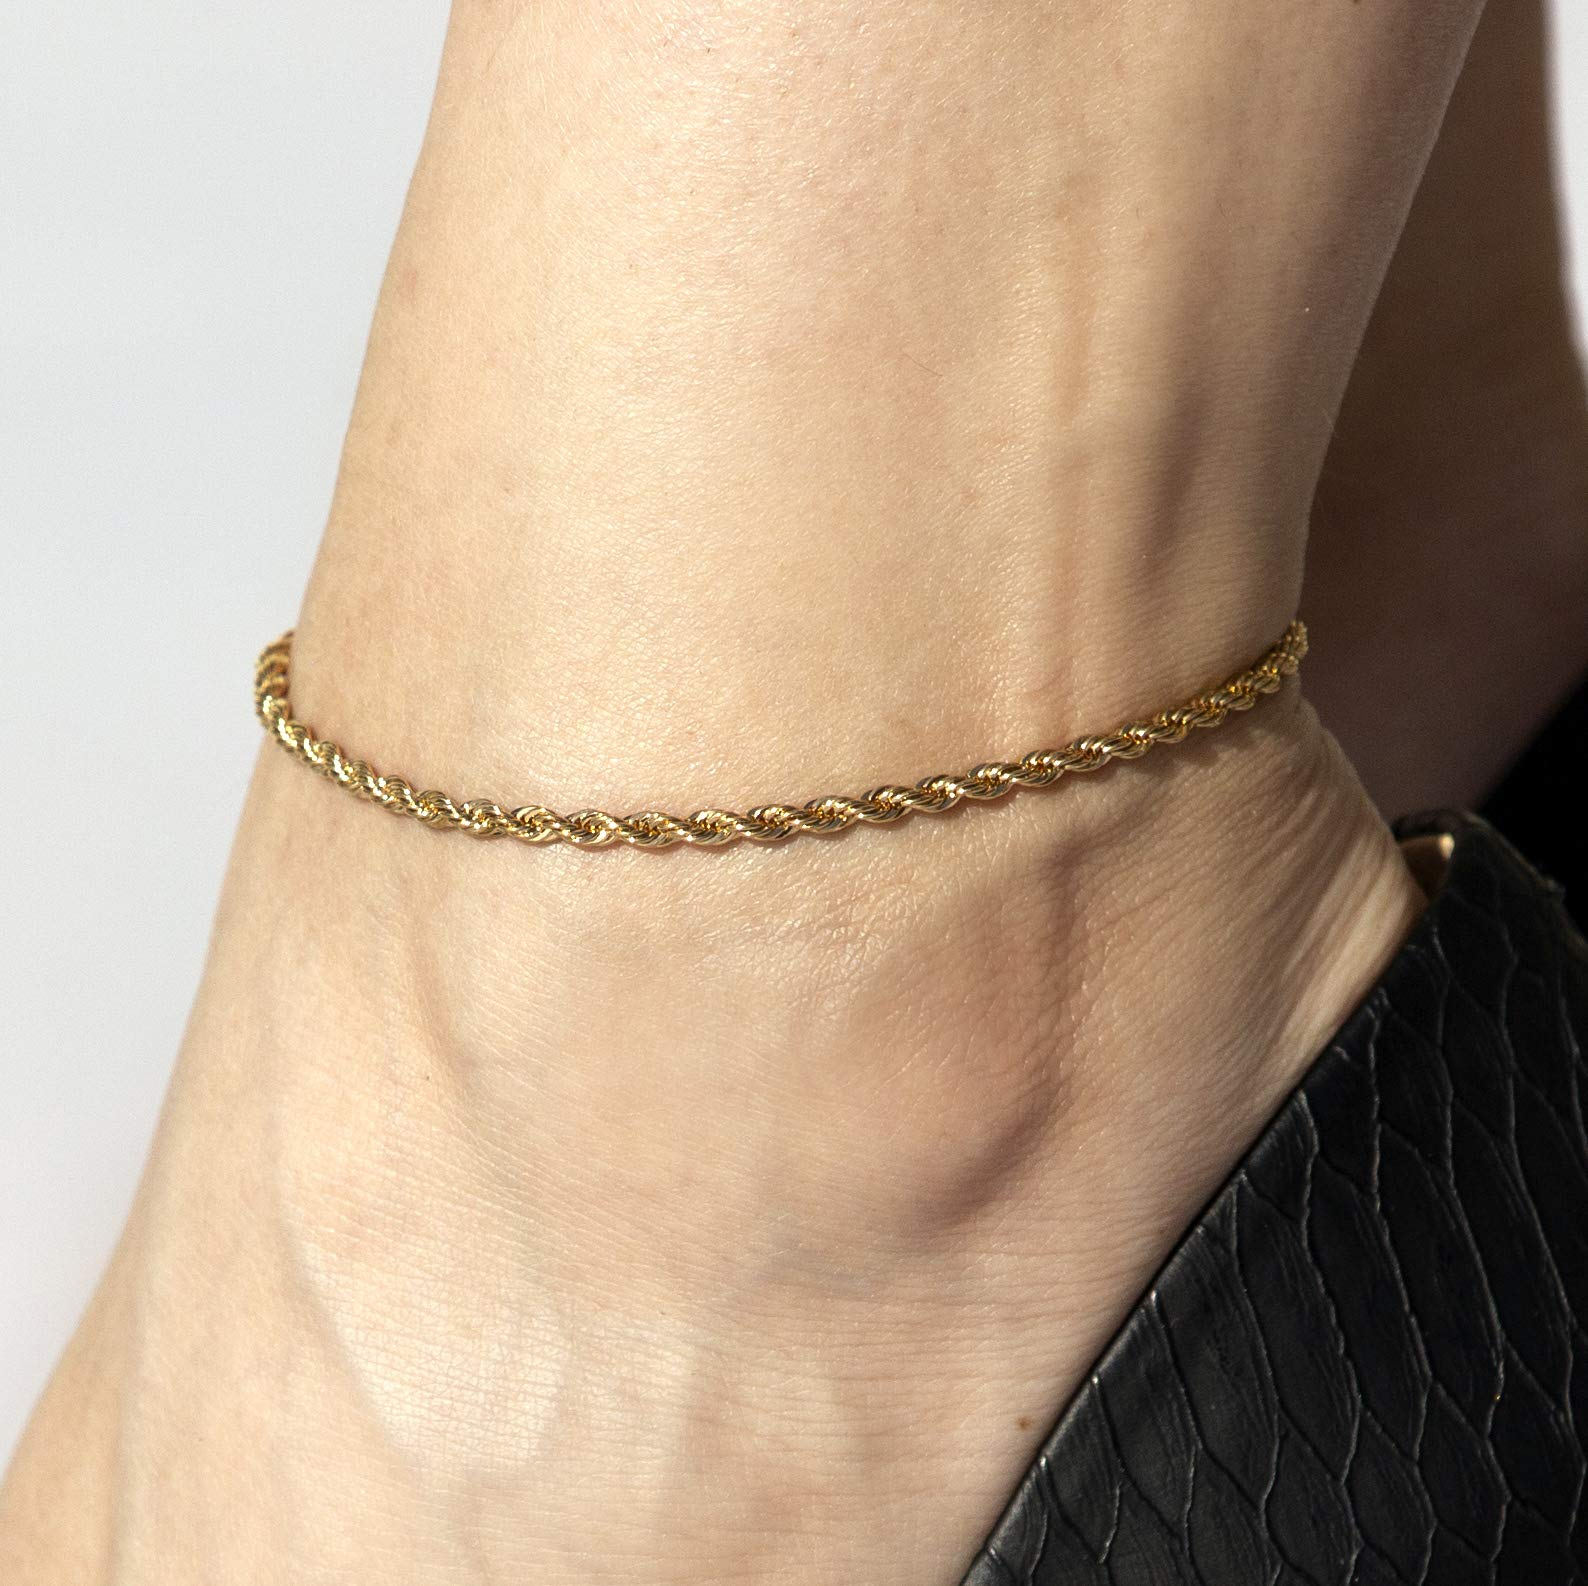 Lifetime Jewelry Ankle Bracelets for Women Men and Teen Girls - 3mm Rope Chain Anklet - Up to 20X More Real 24k Gold Plating Than Other Barefoot Chains (Gold-Plated-Bronze, 9.0) by Lifetime Jewelry (Image #7)